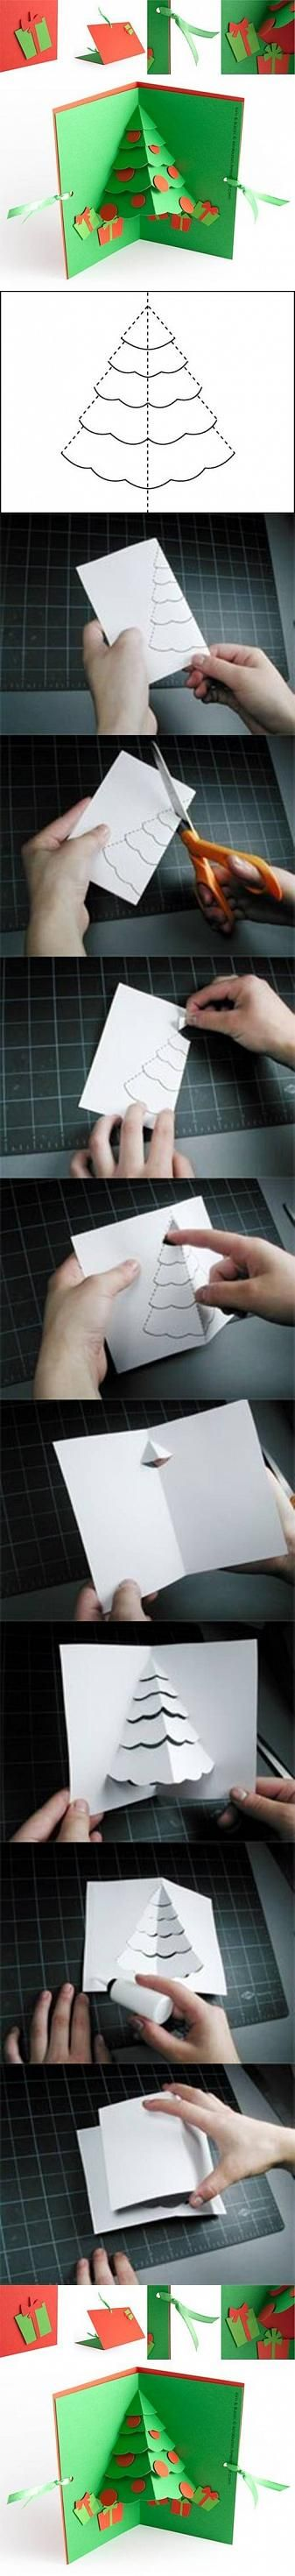 DIY Christmas Tree Pop Up Card DIY Projects | UsefulDIY.com